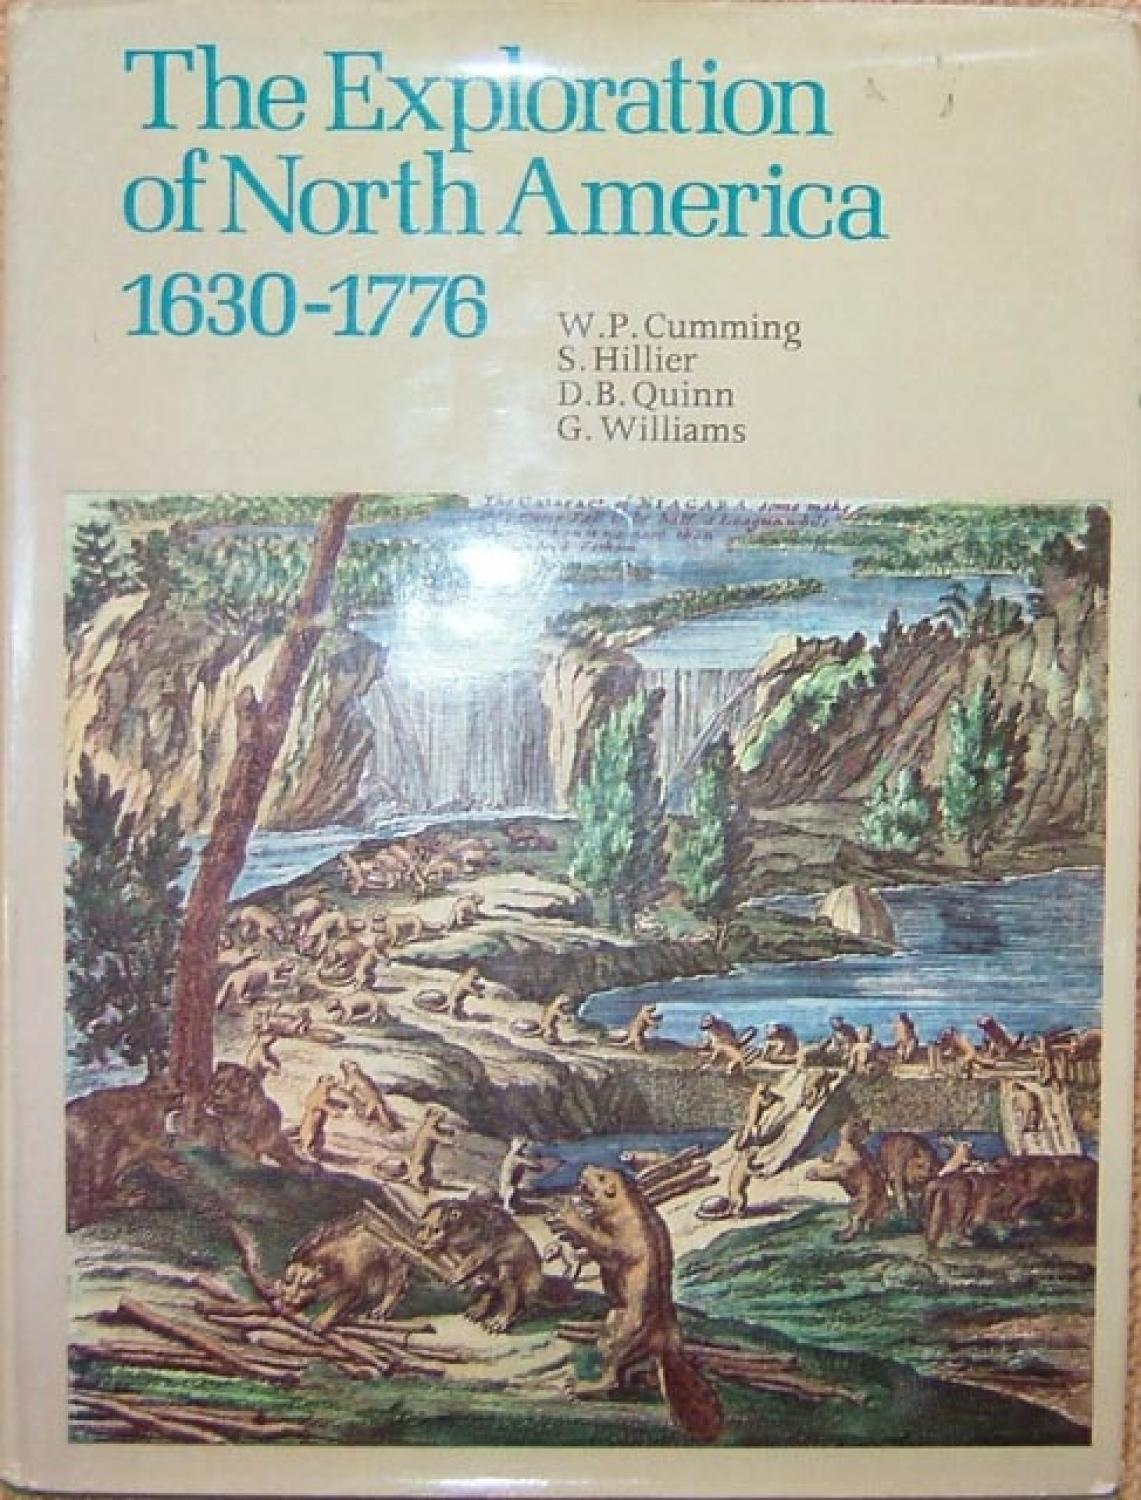 The Exploration of North America 1630-1776